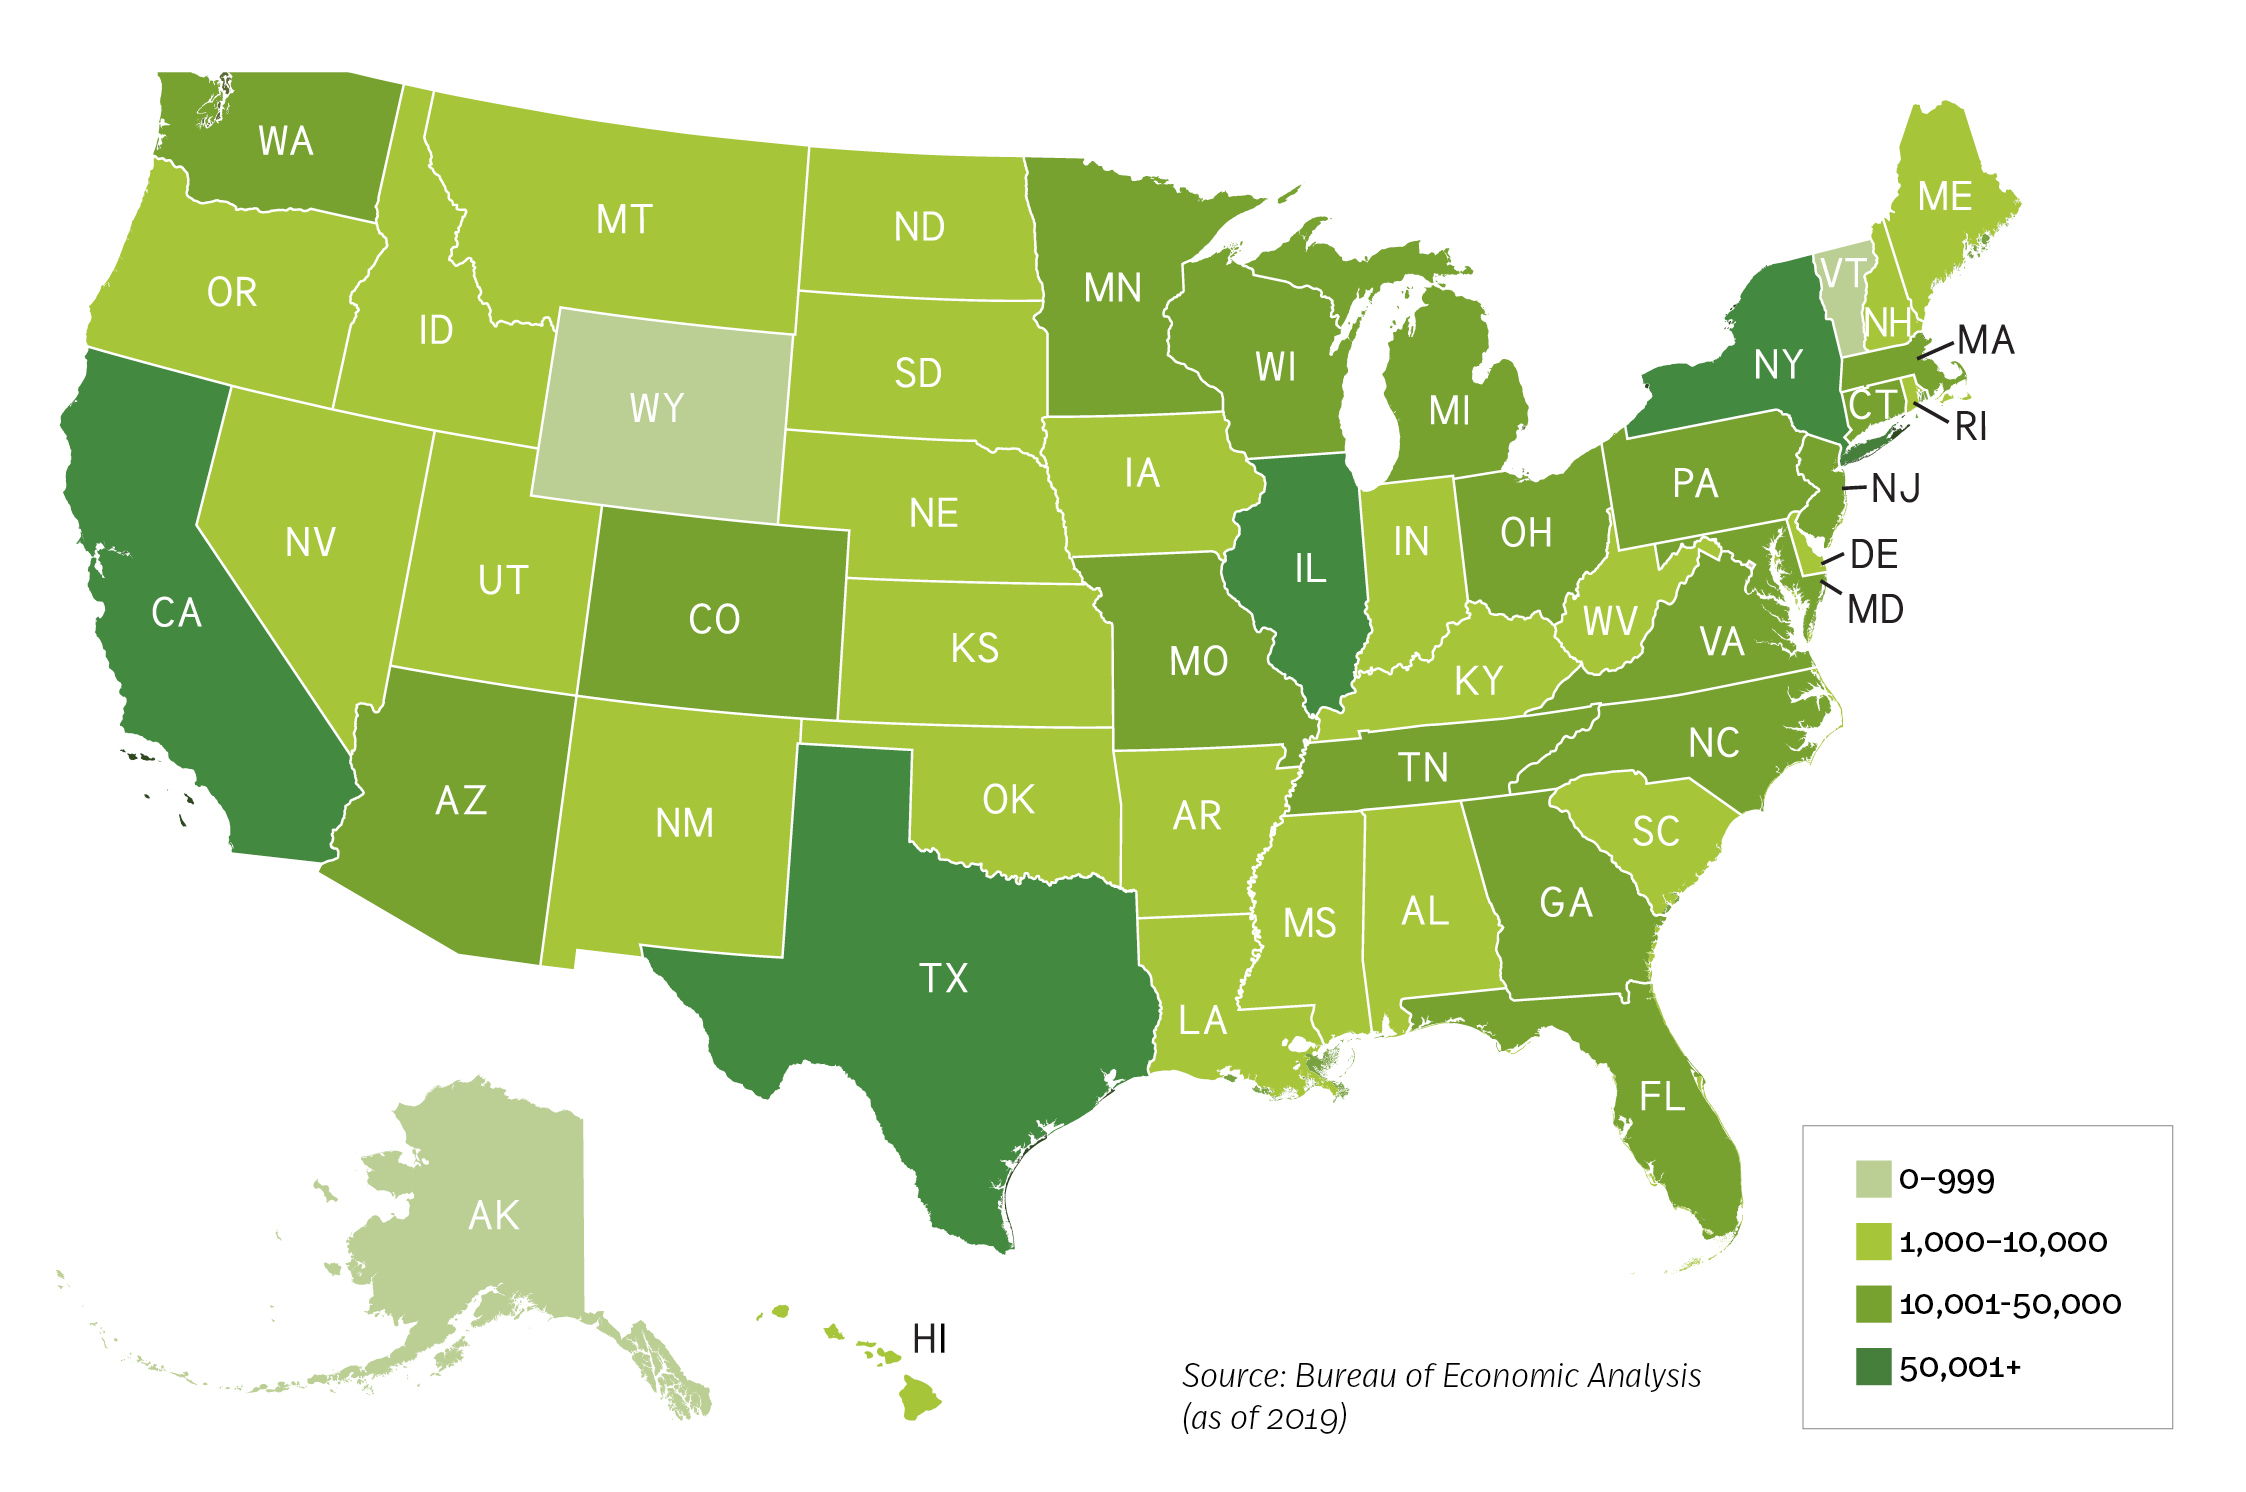 The securities industry has employees in every state